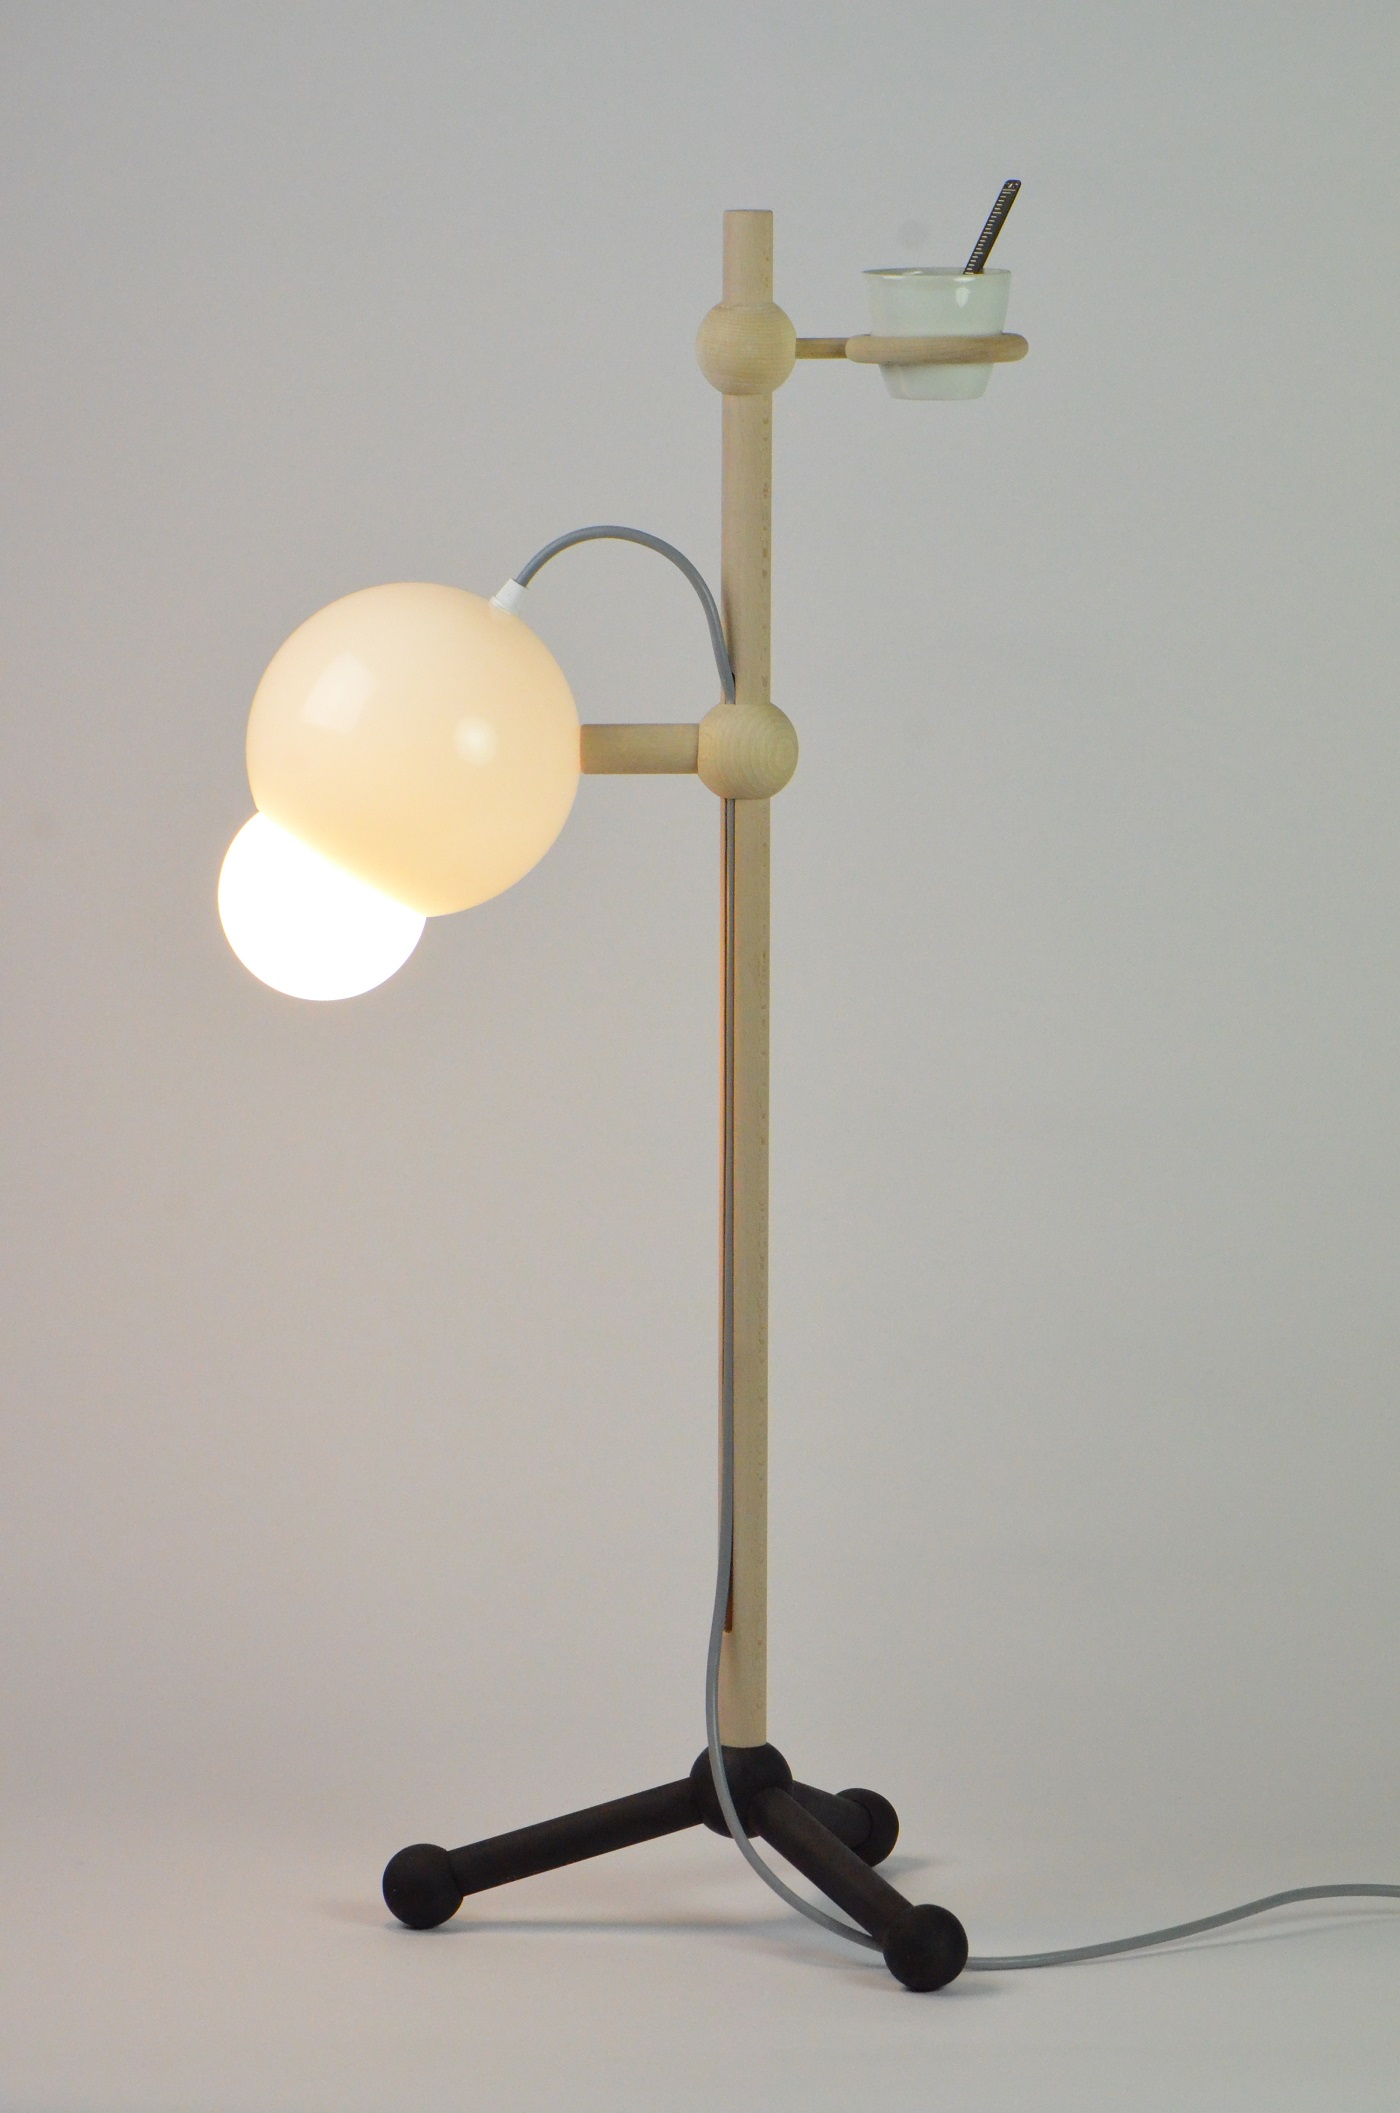 Lamp Lablight 01 van Burojet uit Home Lab collectie